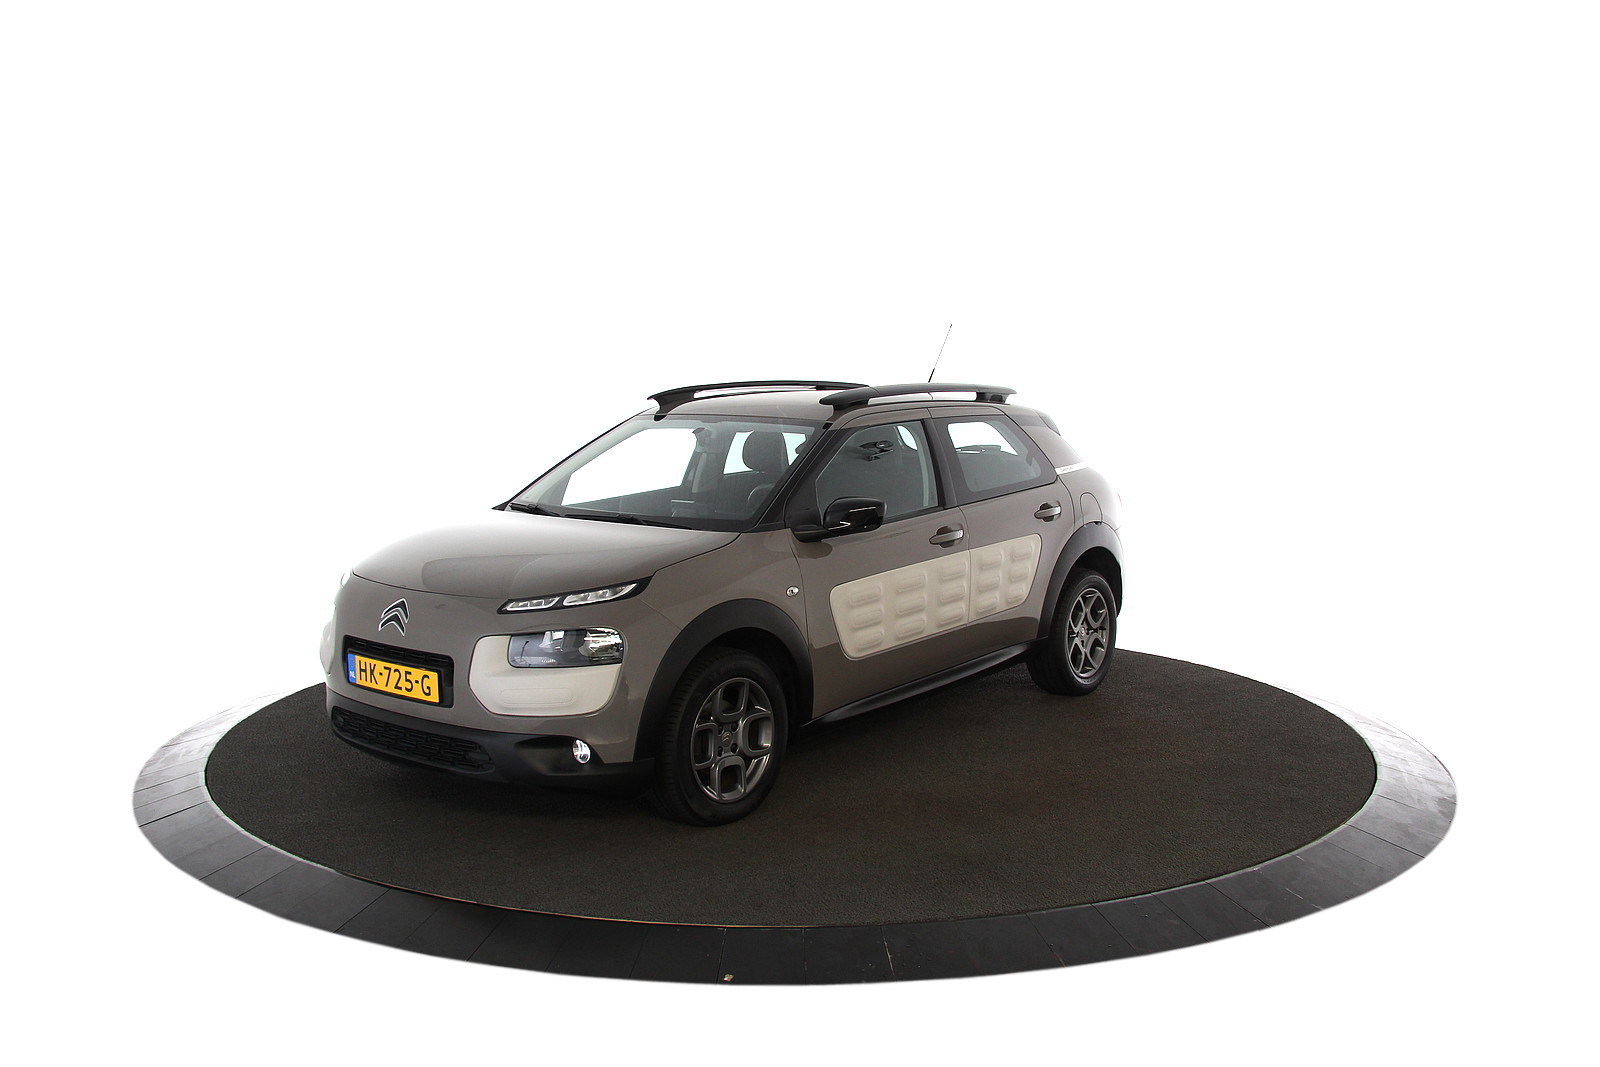 Citroën C4 Cactus 1.2 VTi Feel Friendje